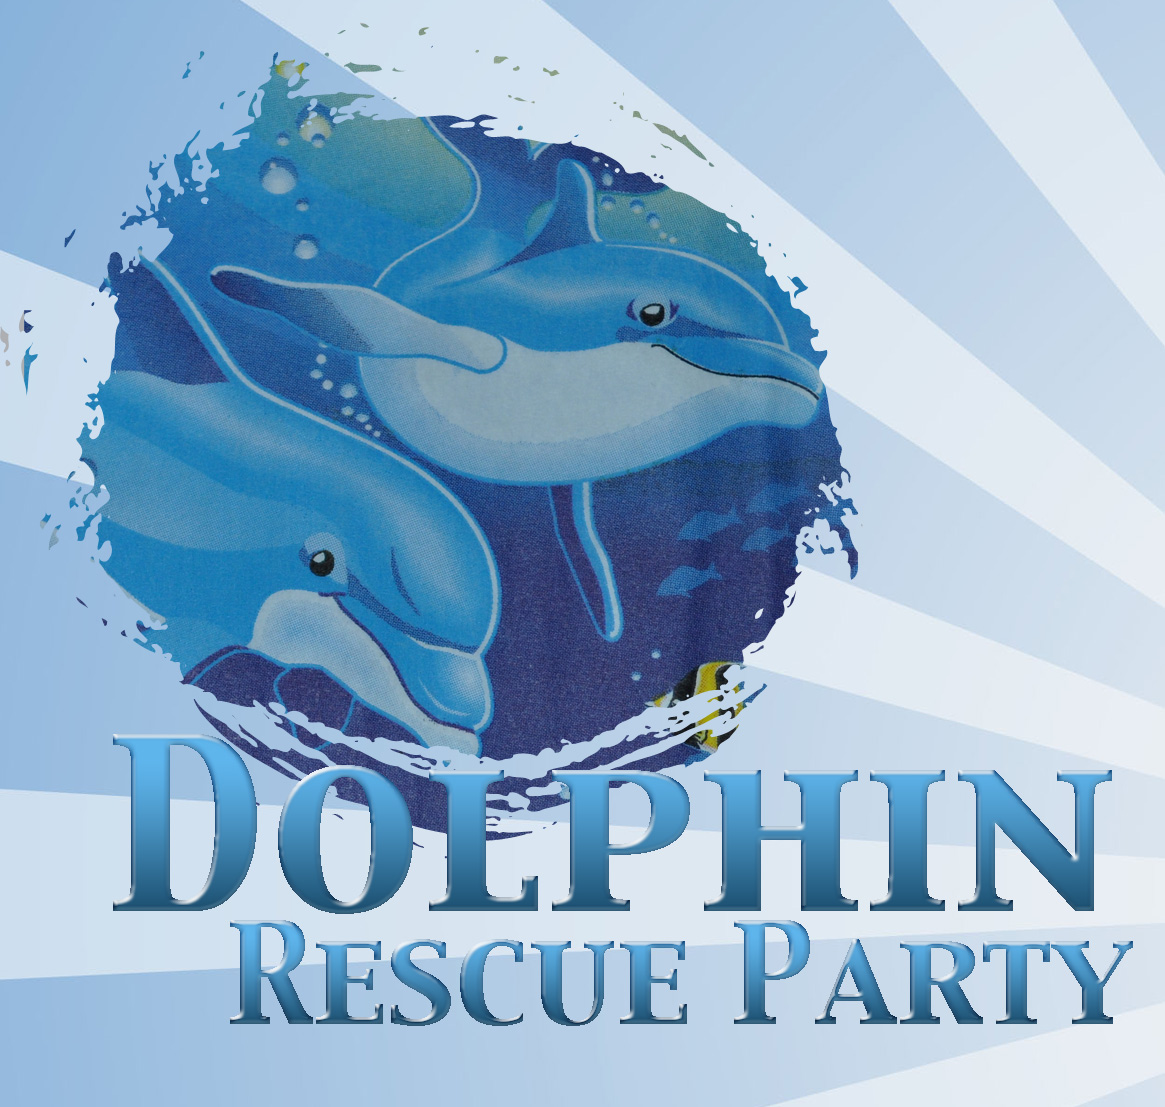 Dolphin tale party invitations life style by modernstork dolphin rescue party nothing filmwisefo Gallery